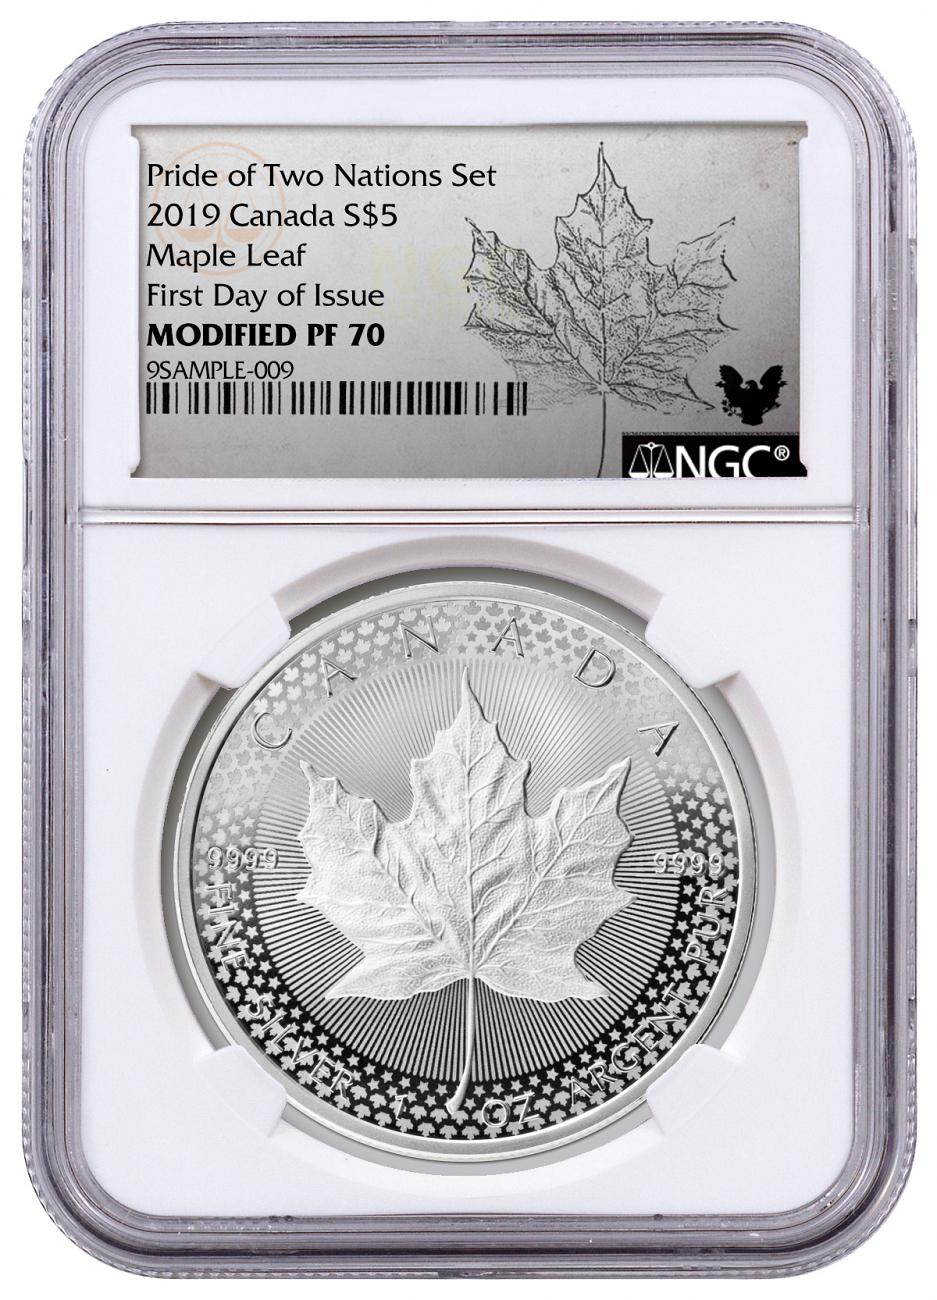 2019 Canada 1 oz Silver Maple Leaf - From Pride of Two Nations Coin Set Modified Proof $5 Coin NGC PF70 FDI Exclusive Maple Label